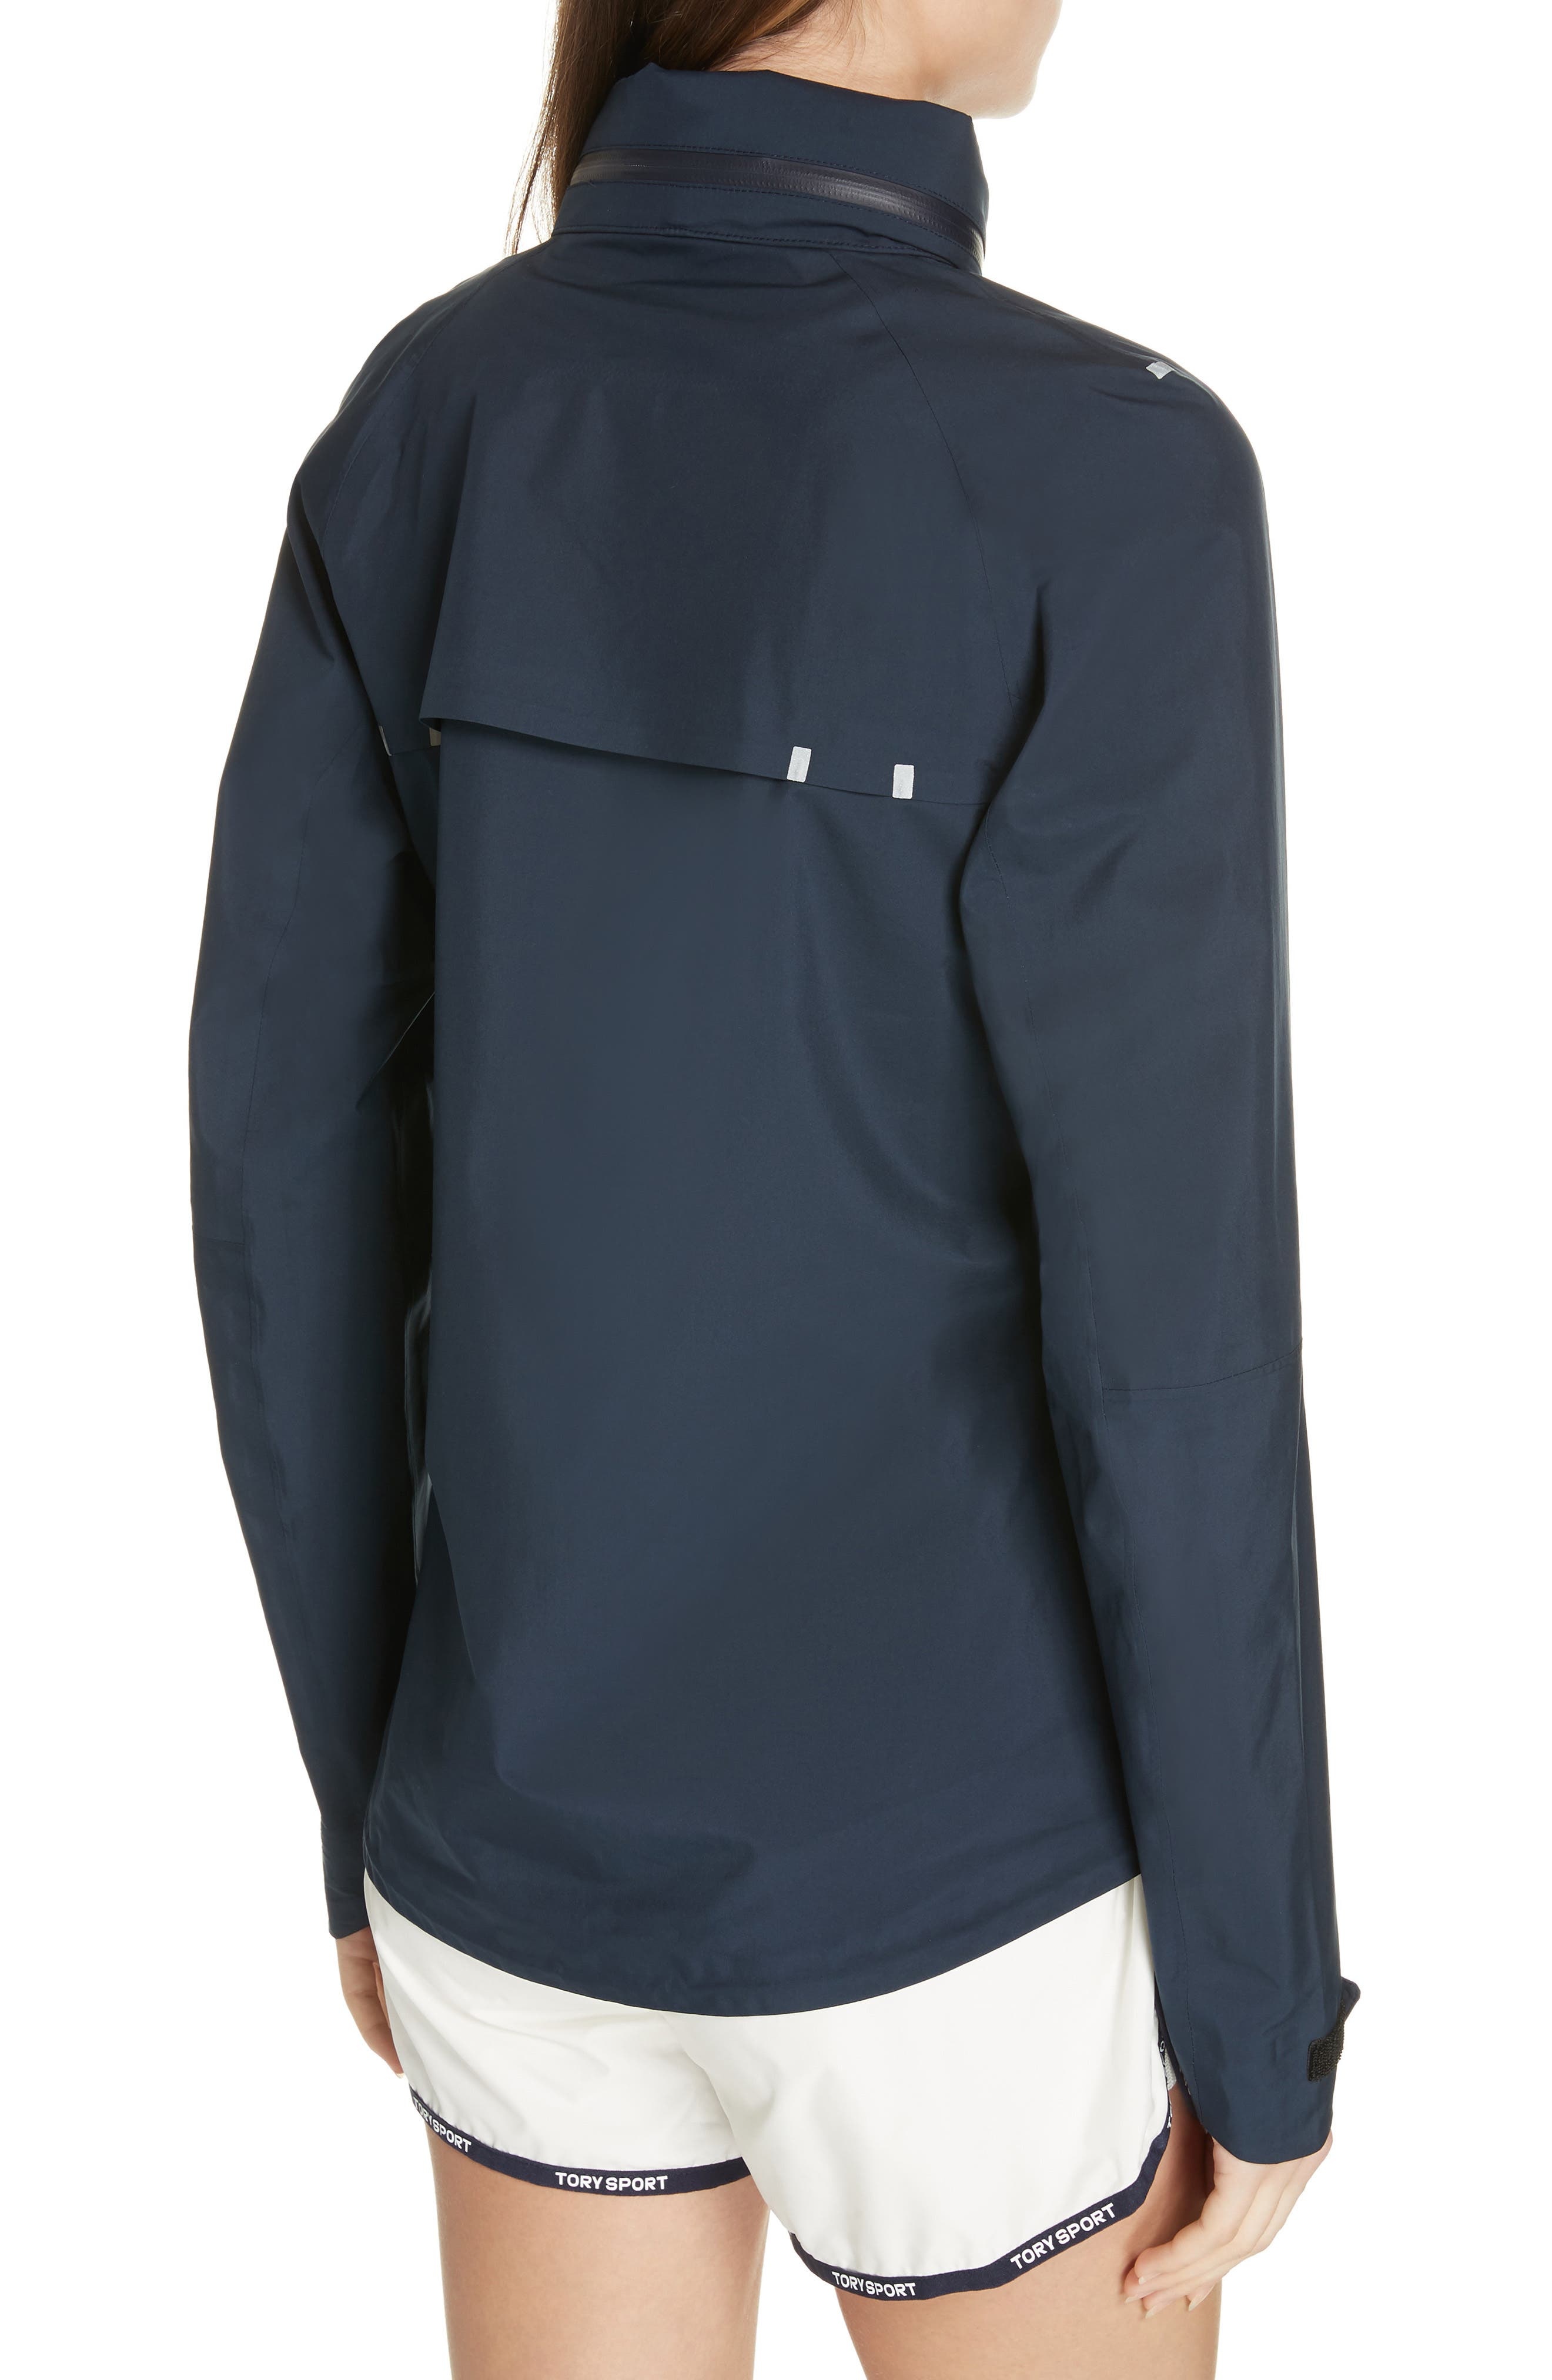 TORY SPORT, All Weather Run Jacket, Alternate thumbnail 2, color, TORY NAVY/ WHITE SNOW